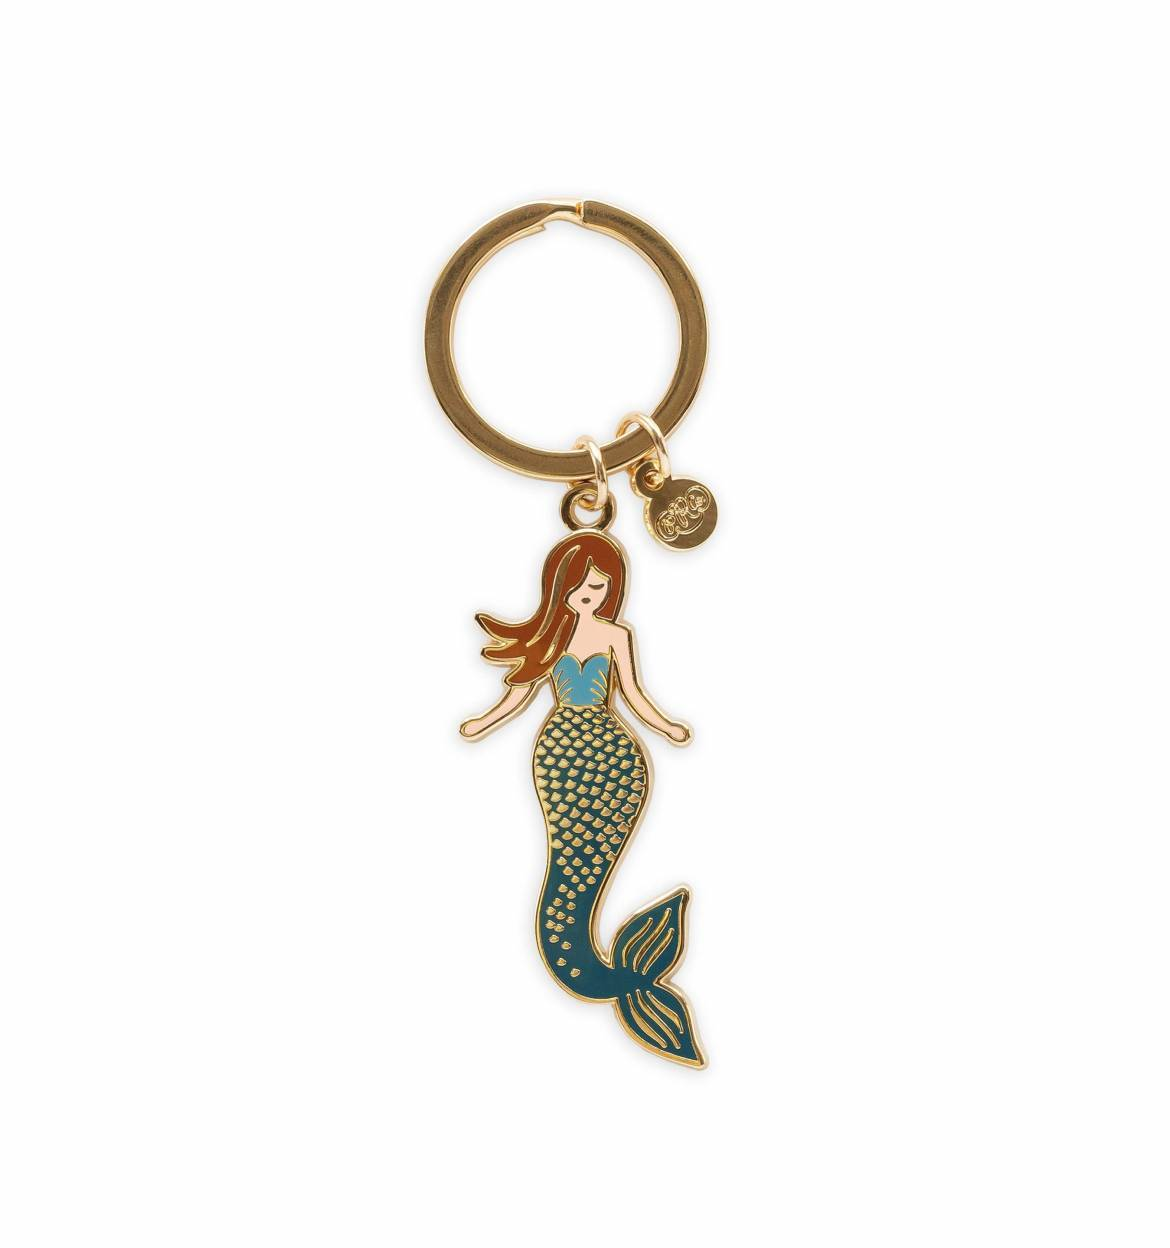 ekm002-mermaid-keychain.jpg